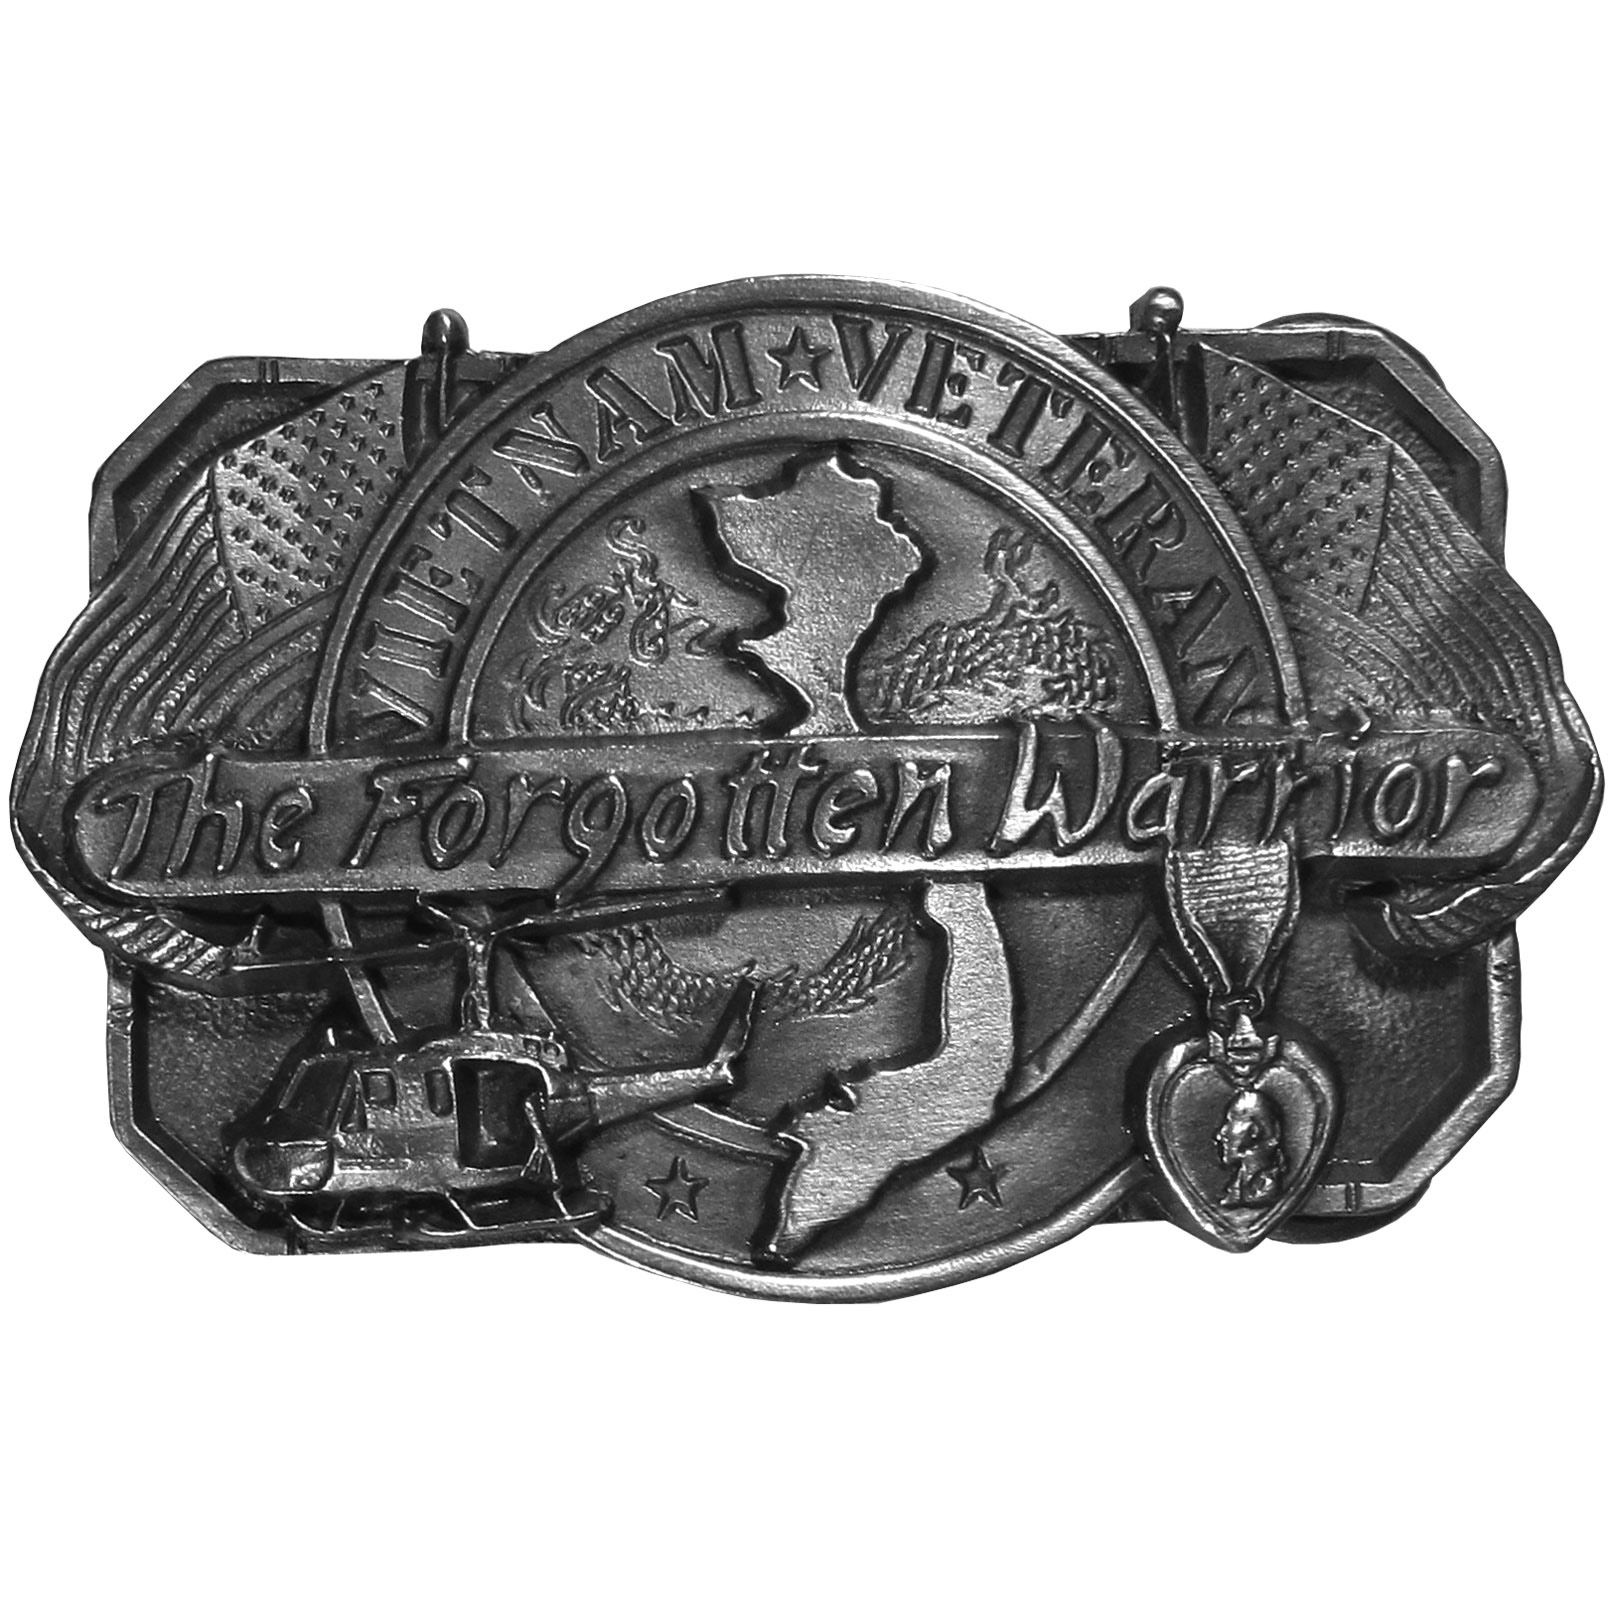 "Vietnam Veteran Antiqued Belt Buckle - ""This belt buckle is for the Vietnam Veteran.  In bold it says, """"Vietnam Veteran, the Forgotten Warrior"""".  There is the shape of Vietnam, a helicopter, two American flags and a medal of honor.  On the back are the words, """"This buckle is dedicated to the Vietnam Veterans and is in honor of those who gave their lives in America's longest and most controversial war.  Those who served in Vietnam came back to a divided country and became our """"Forgotten Warriors"""".  We are telling them now that we appreciate their sacrifices and that they are not forgotten."""""""